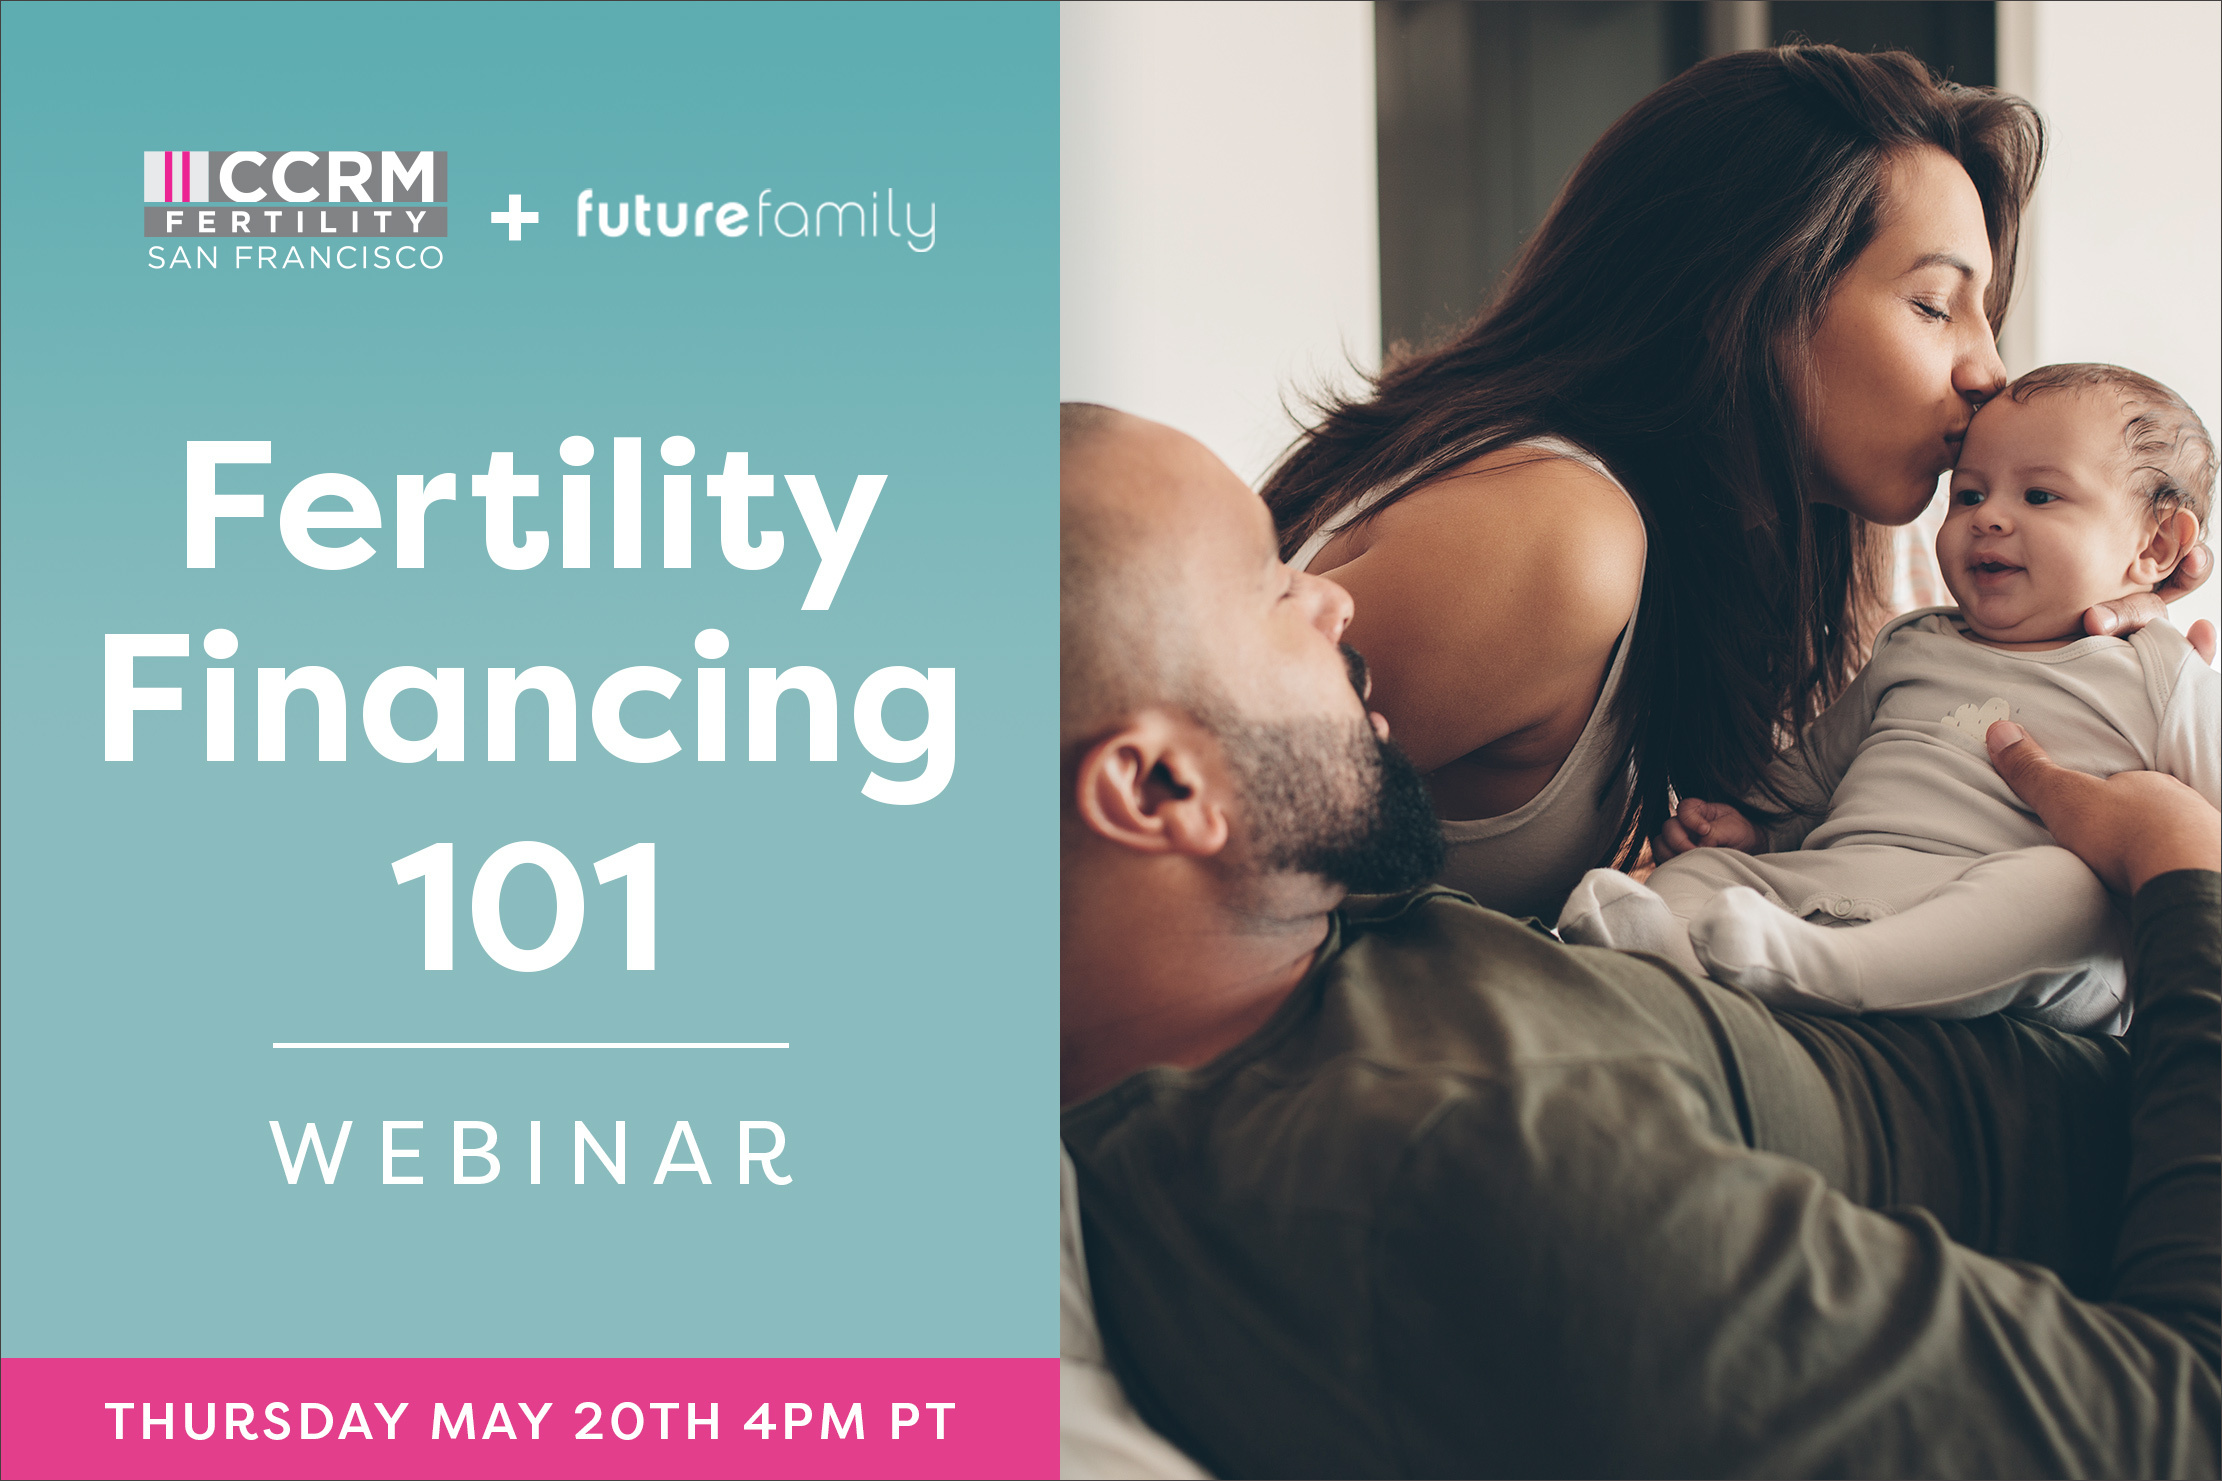 Future Family and CCRM SF Webinar Image